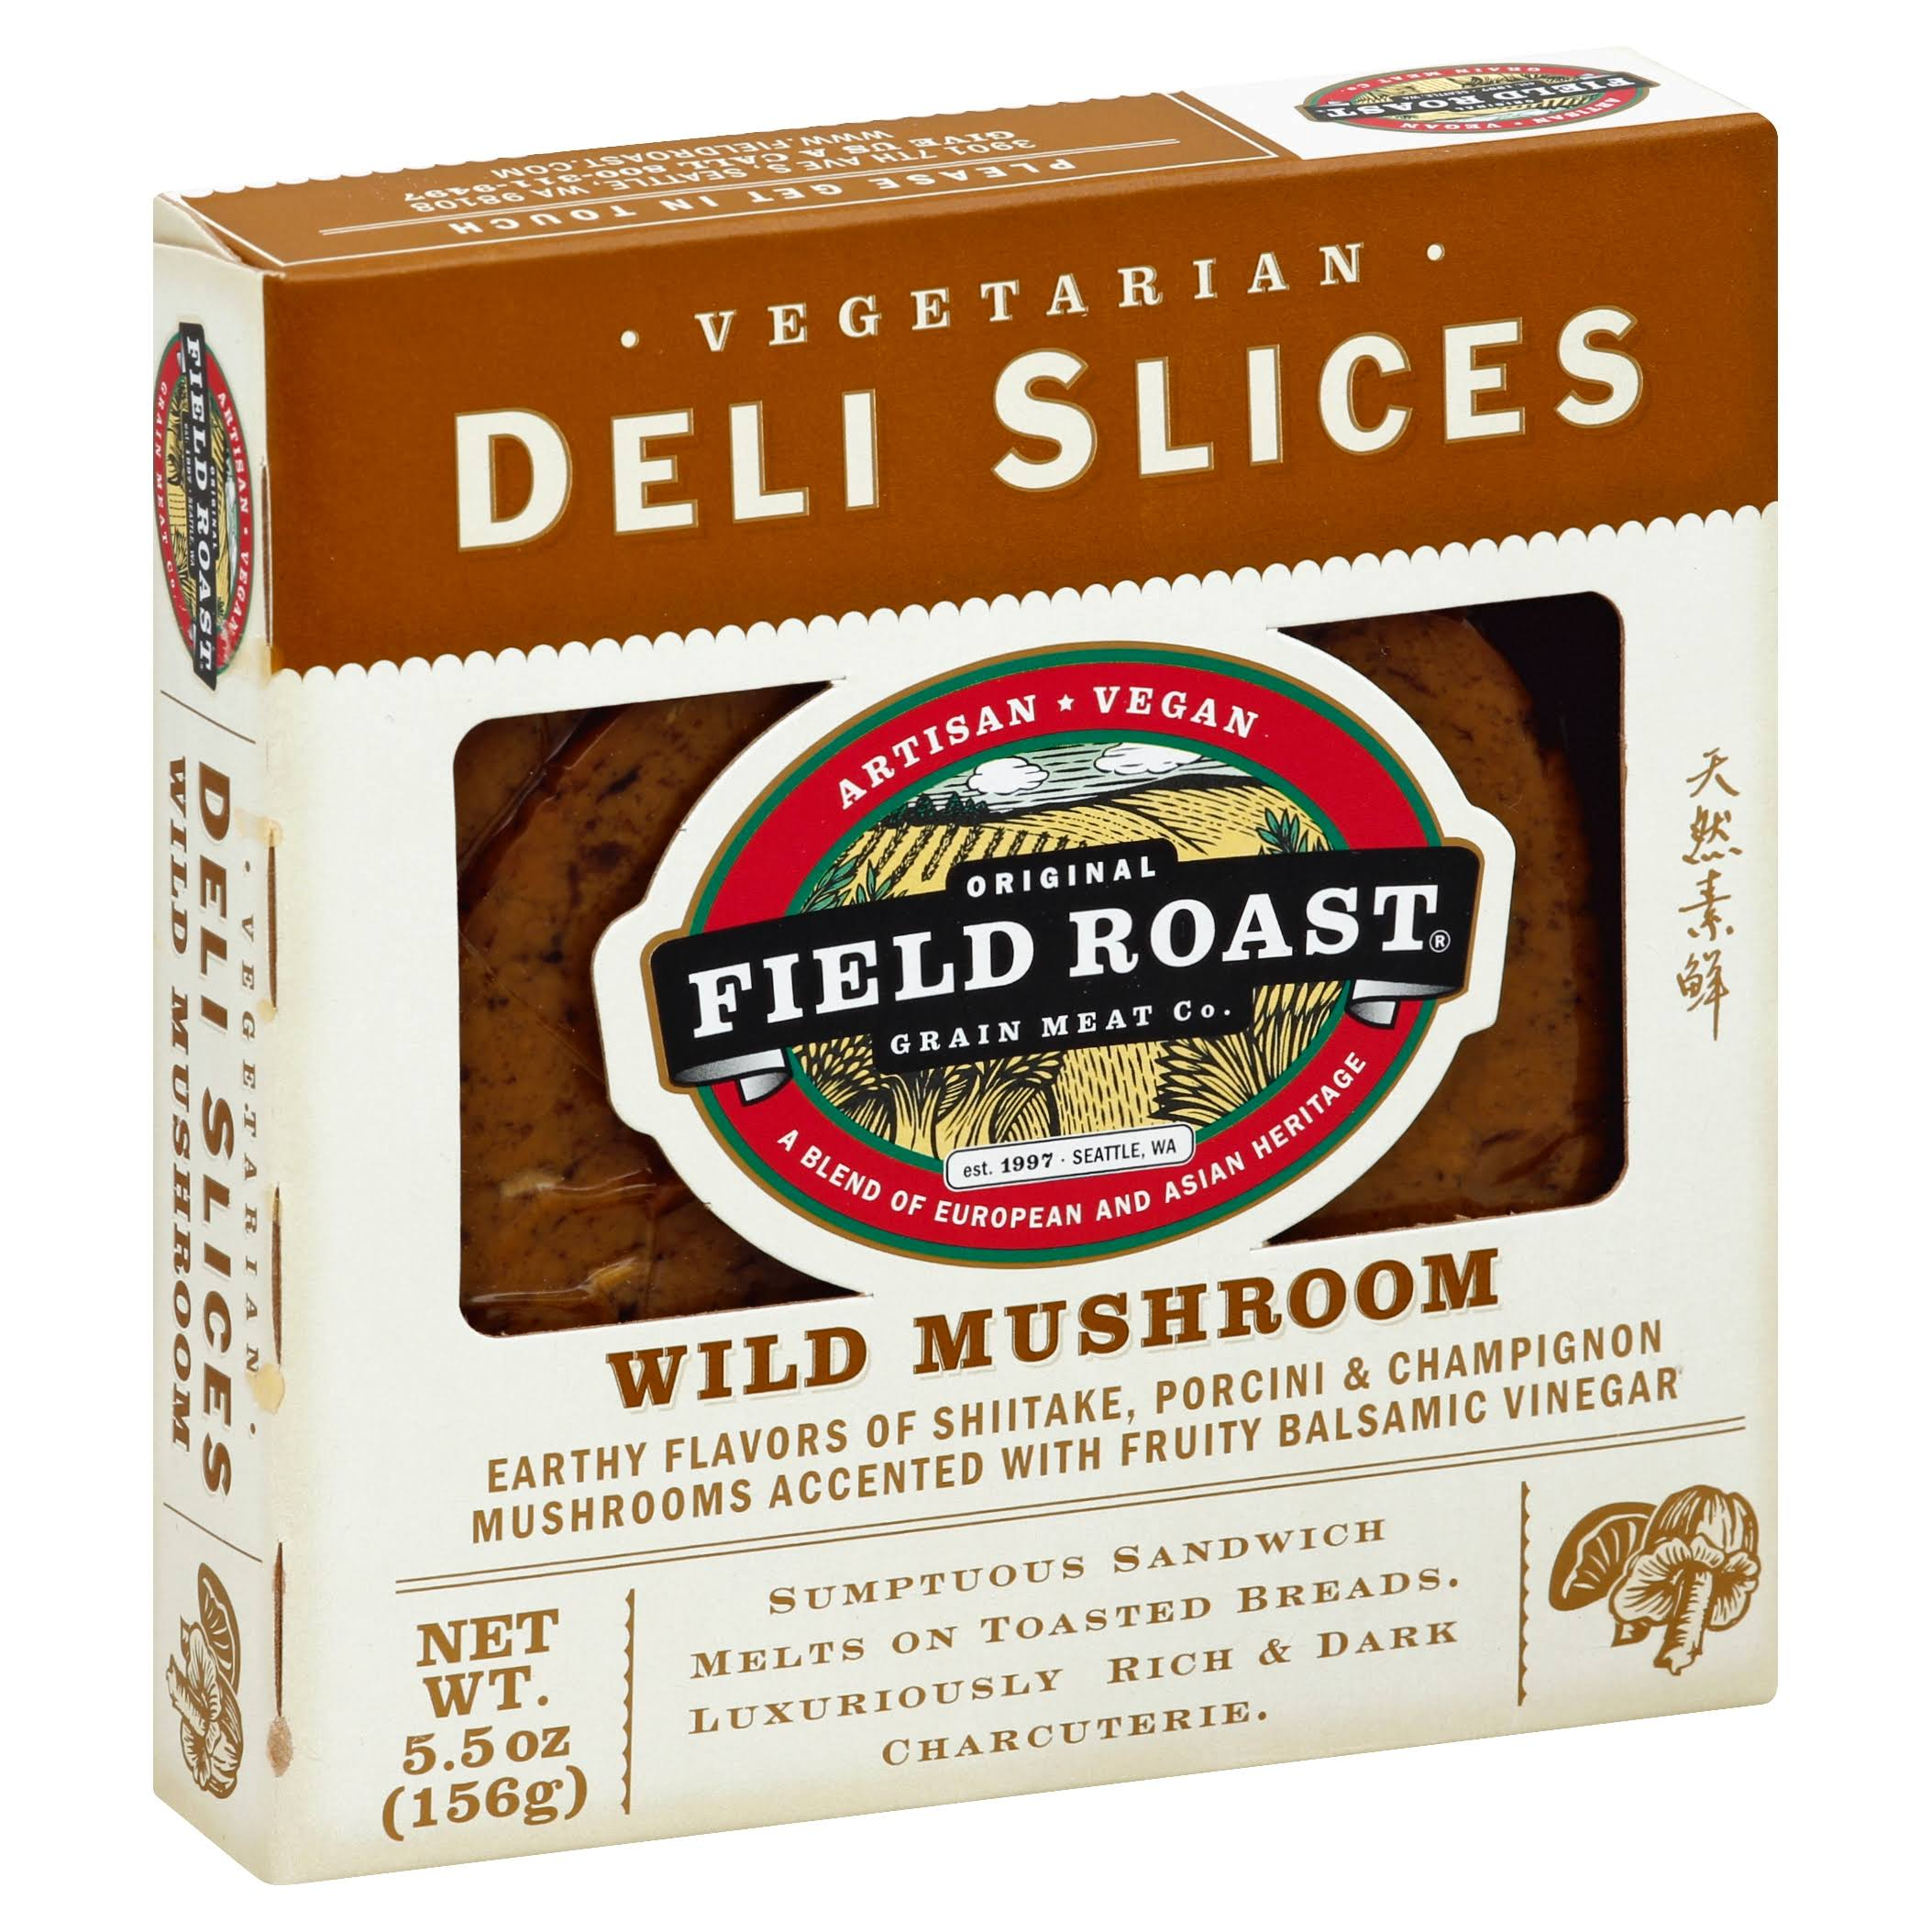 Field Roast Wild Mushroom Deli Slice - 5.5 oz total